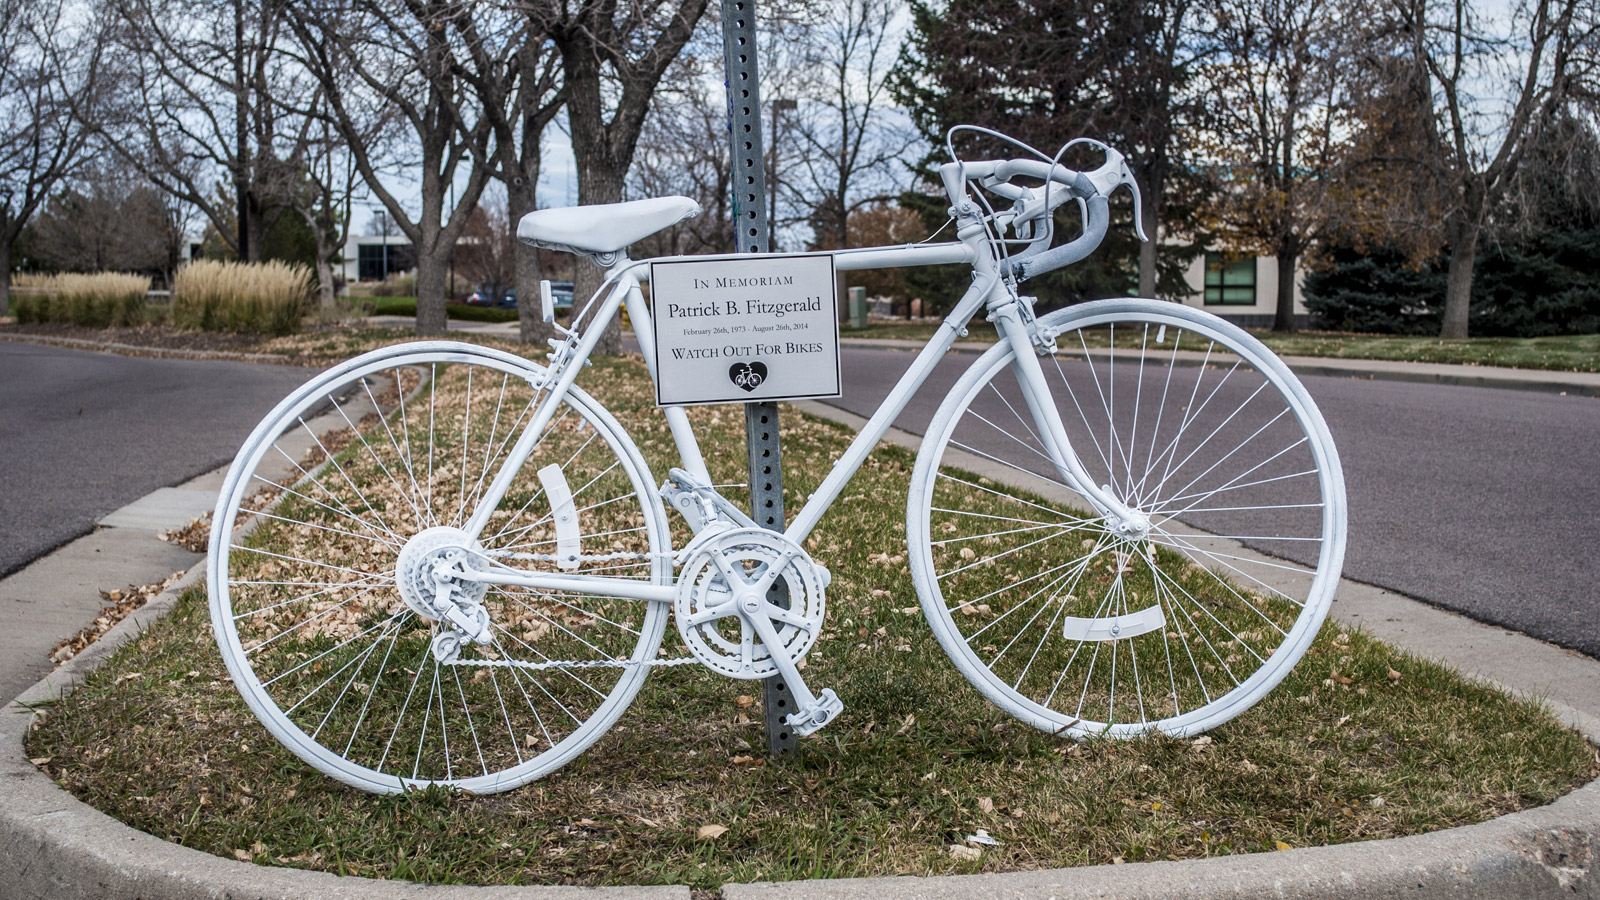 A memorial bicycle for Patrick Fitzgerald (credit: Nancy Fitzgerald)